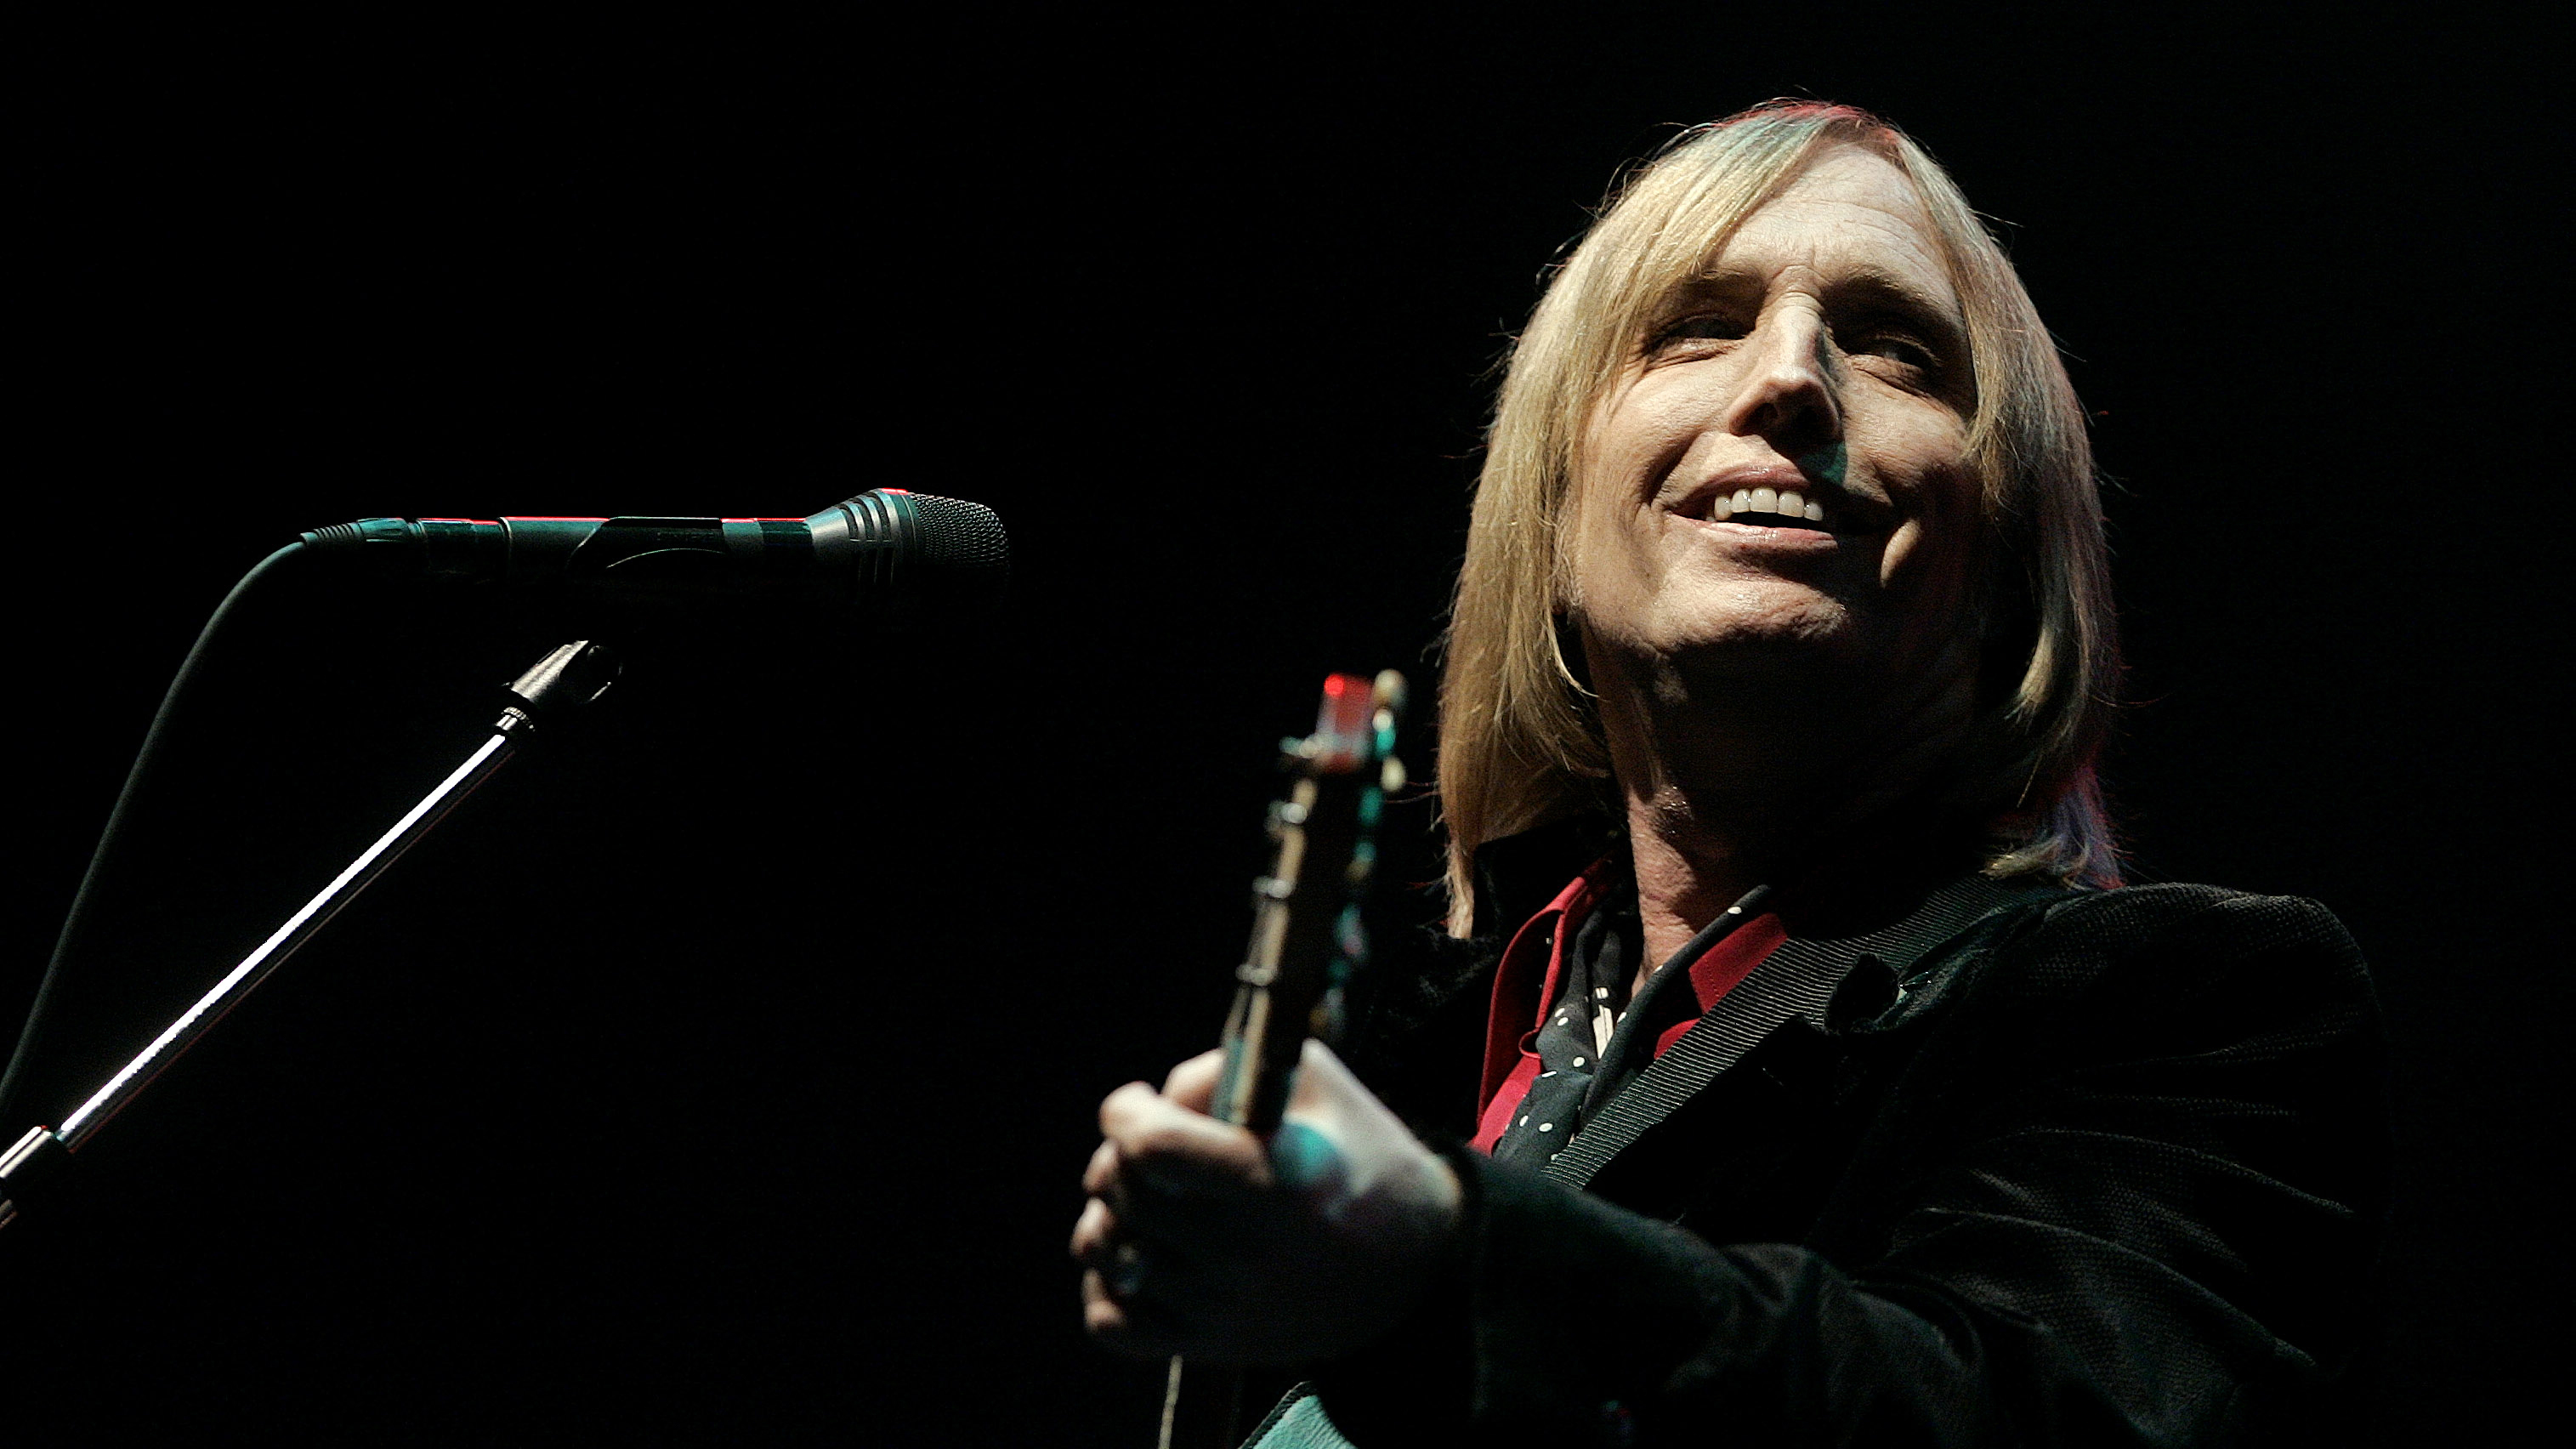 Tom Petty and the Heartbreakers perform at the Bonnaroo Music & Arts Festival in Manchester, Tenn., on Friday, June 16, 2006. (AP Photo/Mark Humphrey)